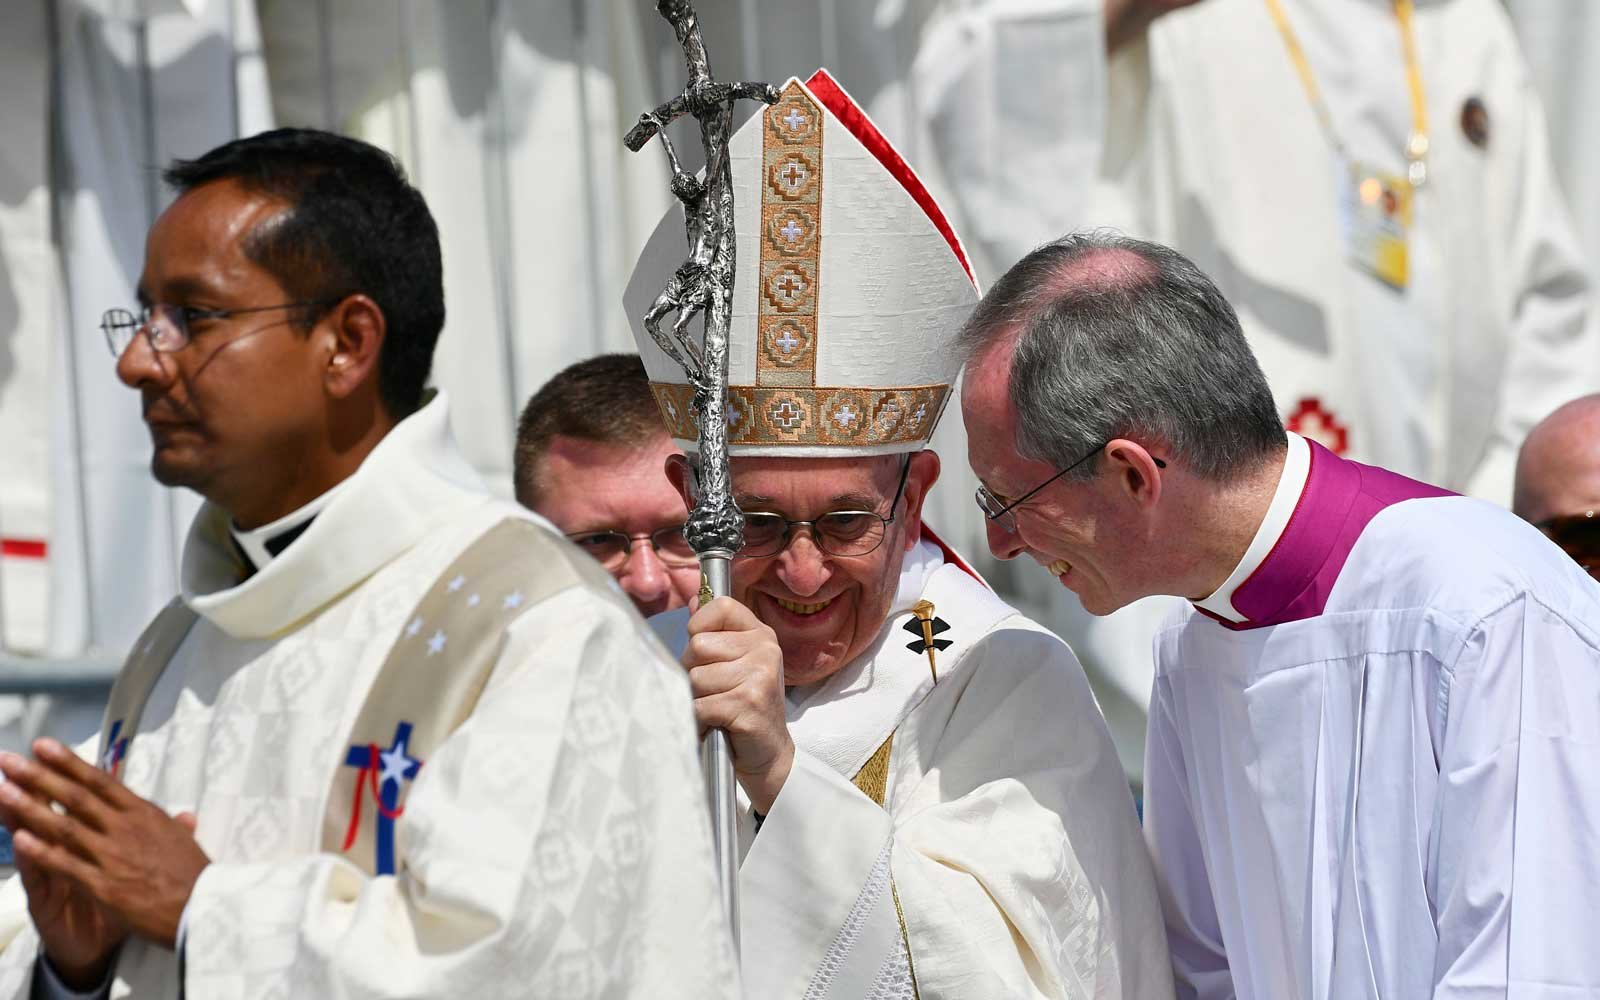 Pope Francis (C) smiles as he walks to the altar set at Lobitos Beach, near the northern Chilean city of Iquique, where he will celebrate an open-air mass on January 18, 2018